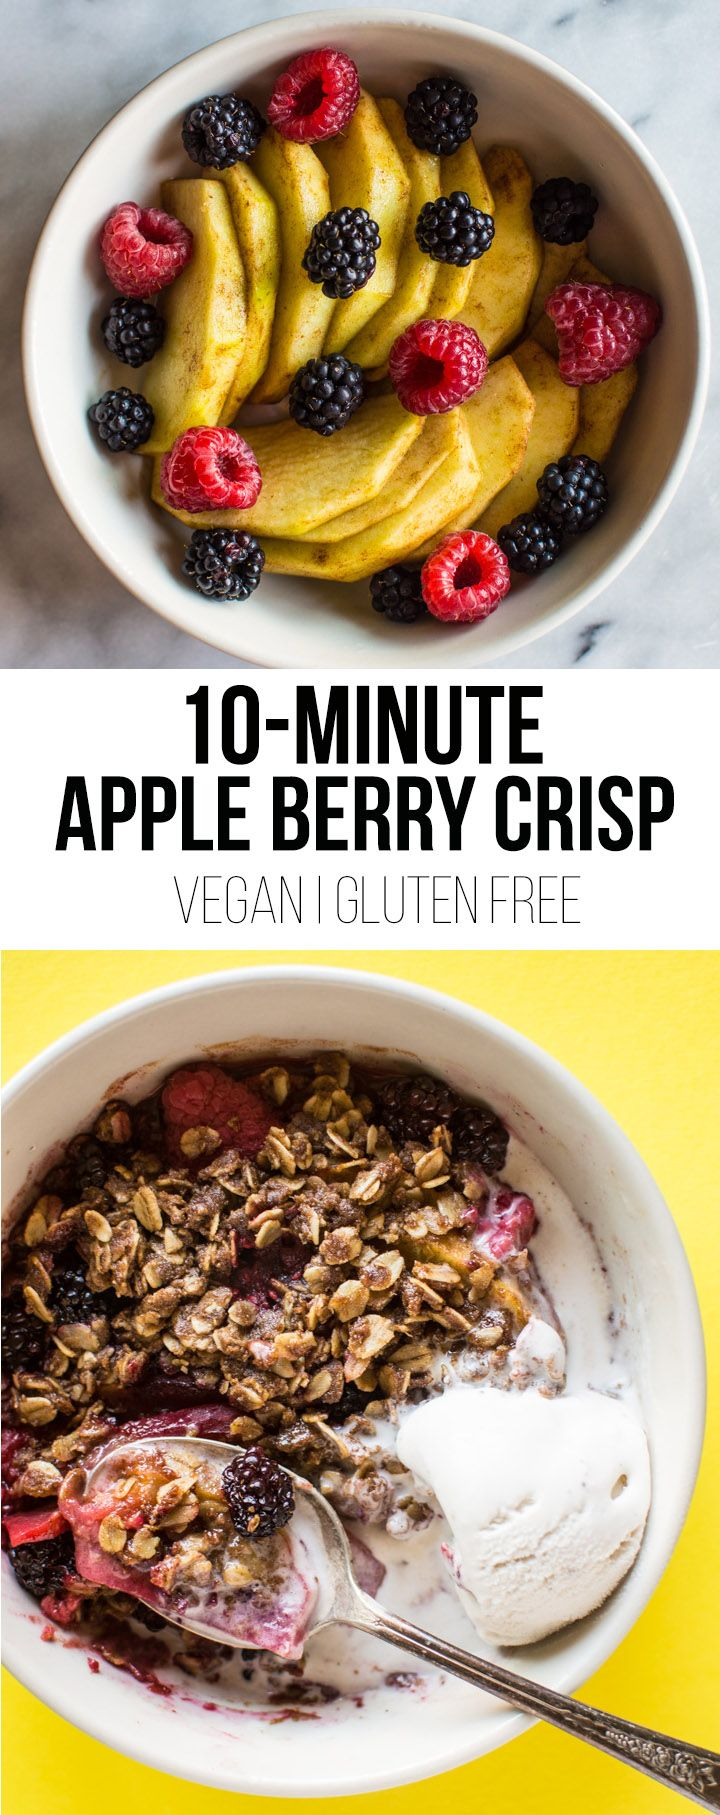 This scrumptious vegan microwave apple berry crisp is ready in under 10 minutes! All you need is a bowl, your microwave, and a sweet tooth!